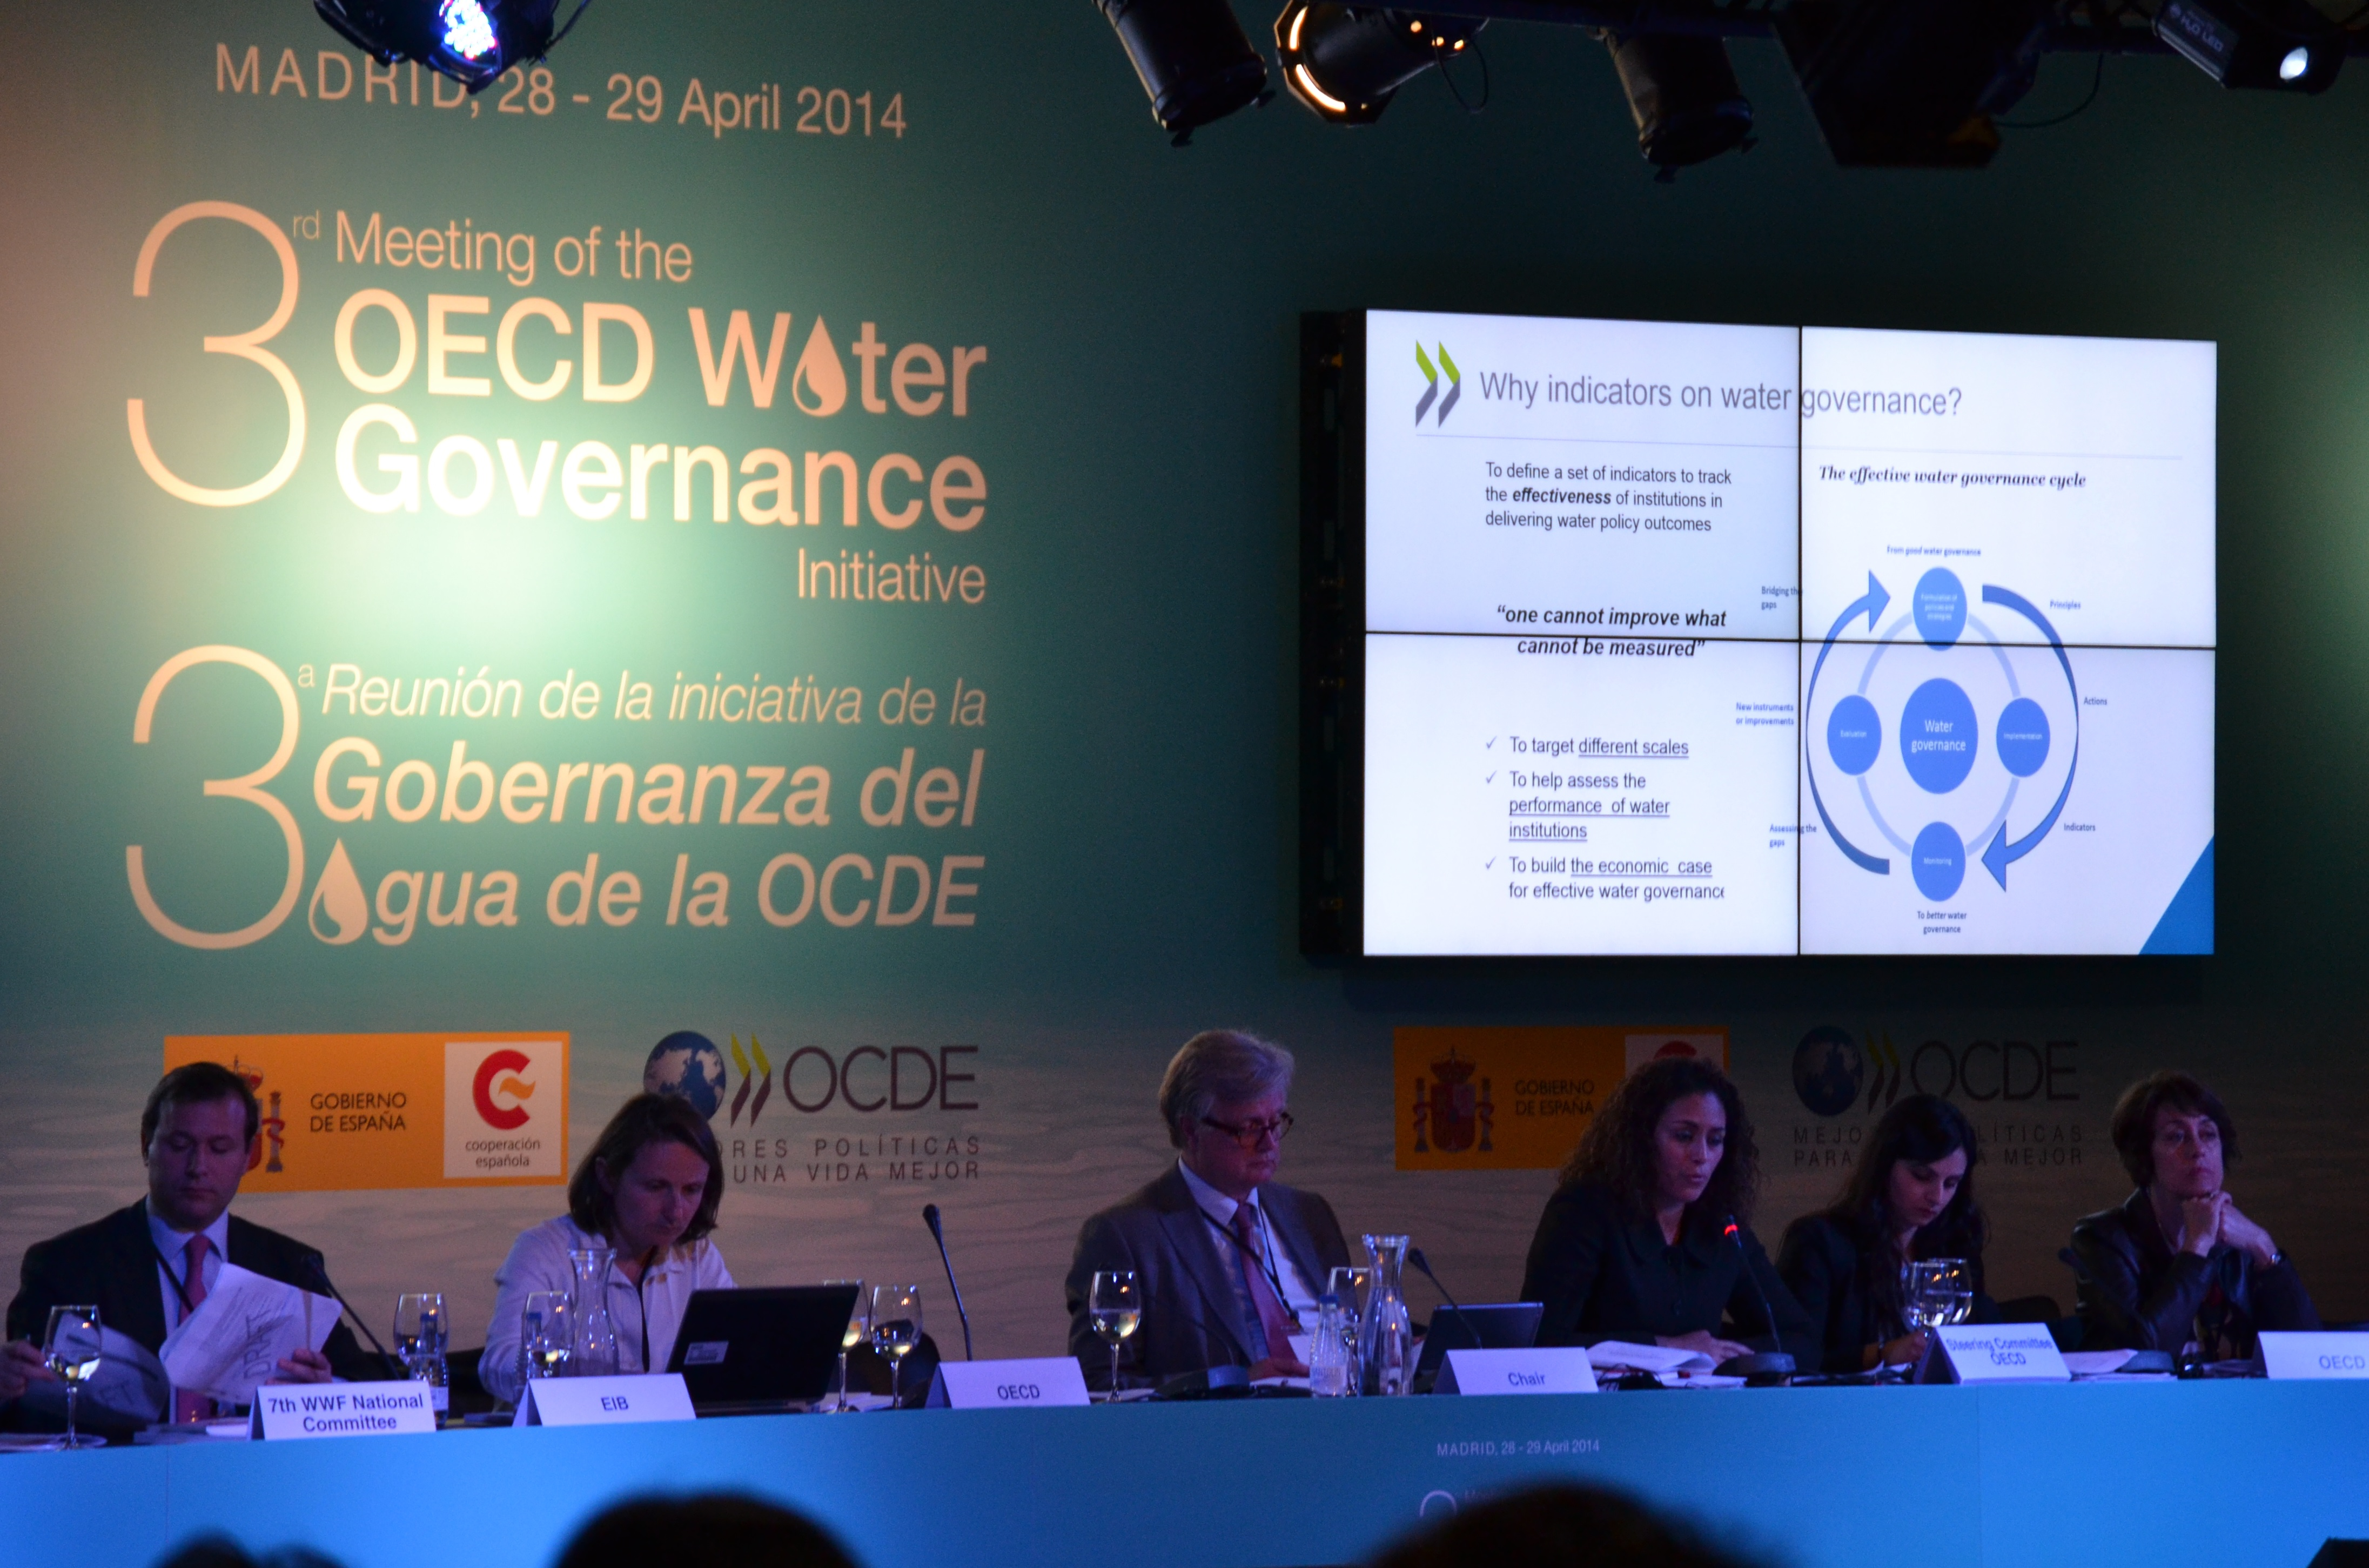 Madrid hosts OECD Water Governance Initiative meeting